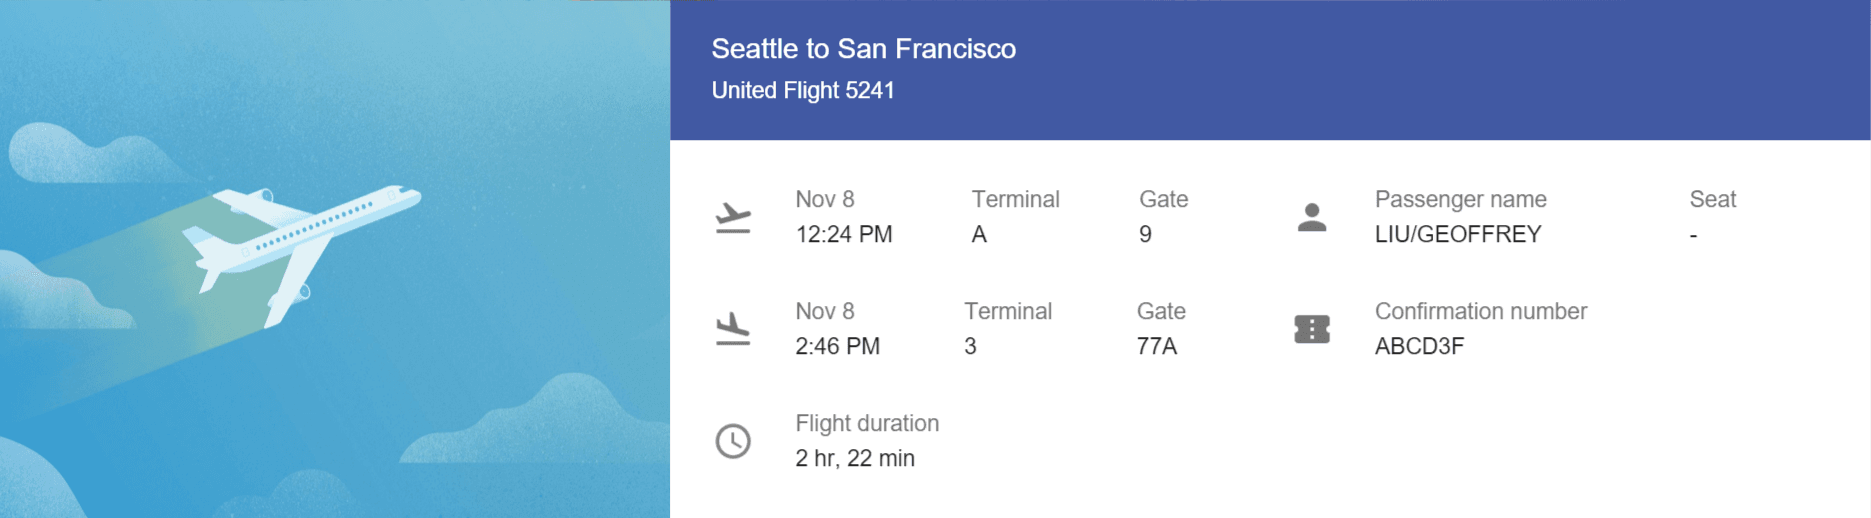 Flight information as displayed by Inbox by Google